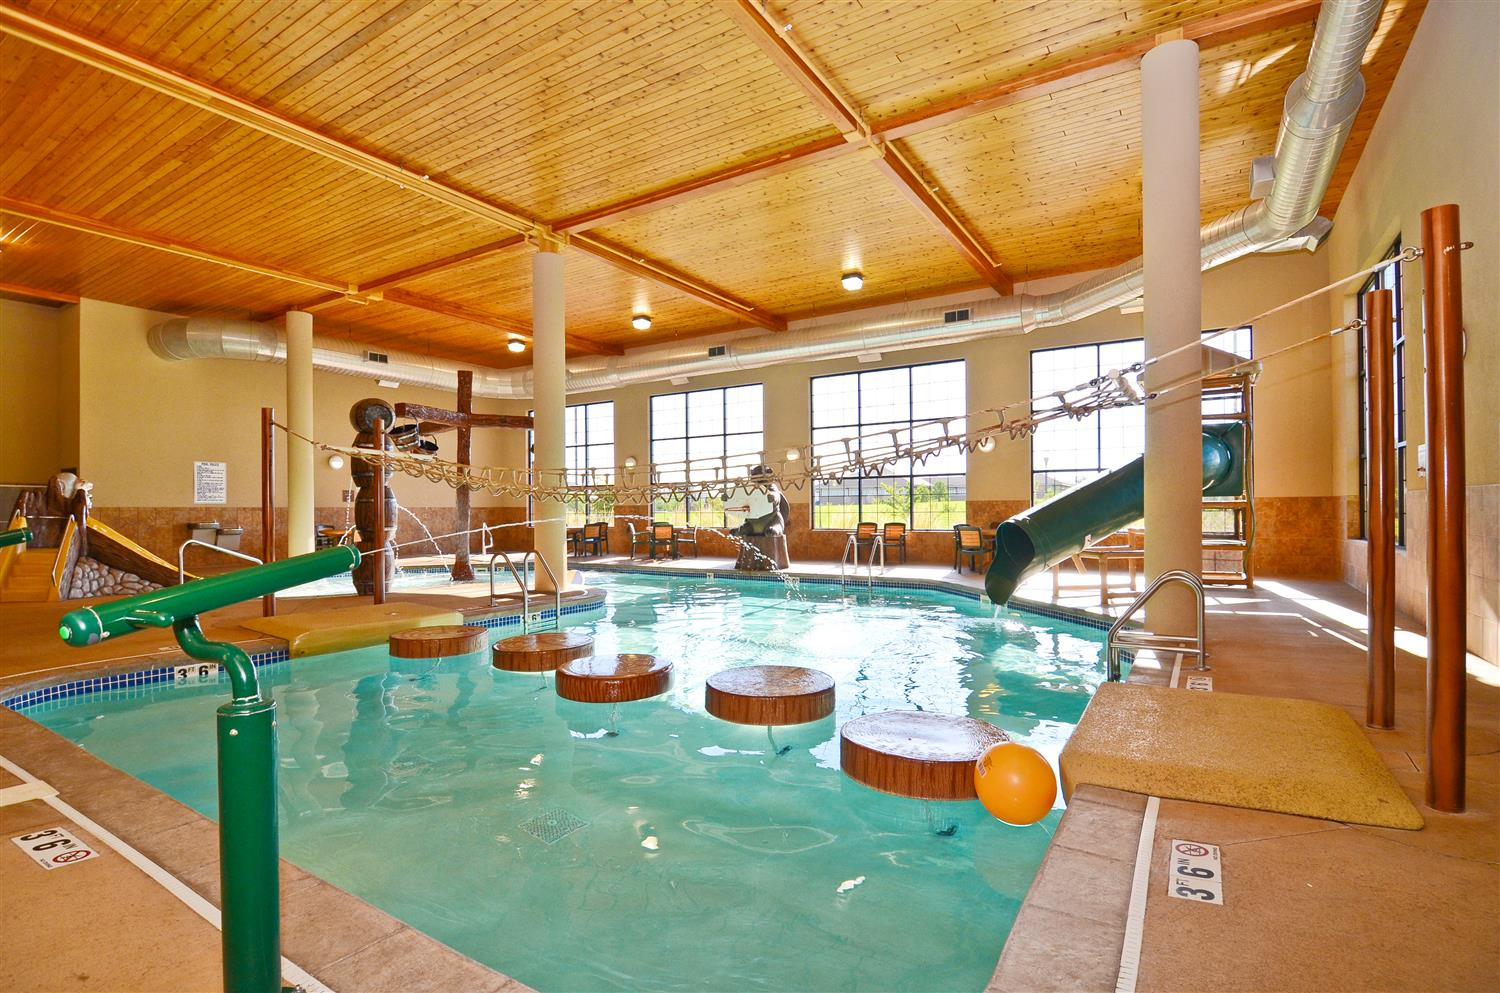 Hotels With Jacuzzi In Room Grand Forks Nd